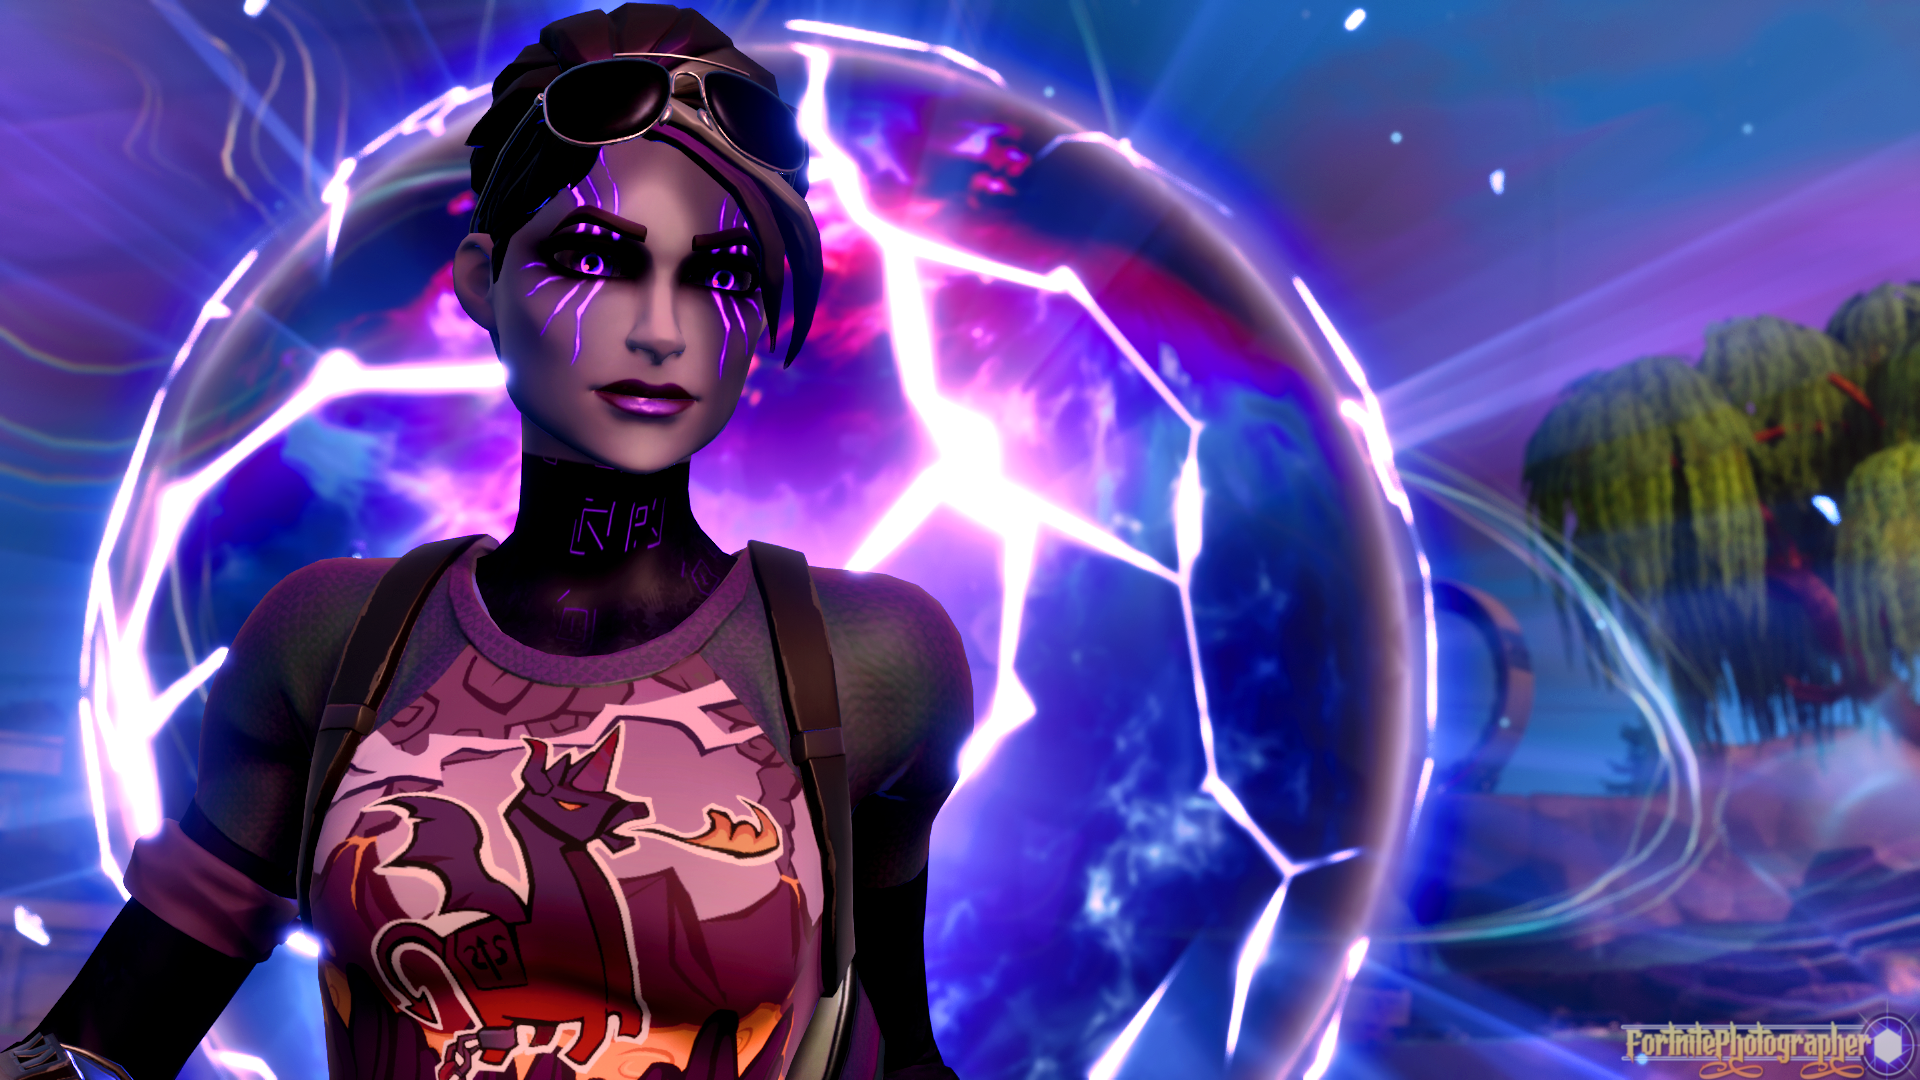 Goodbye Season 9 Last Post Of Season 9 I Will See You All In The Next Season Love You Thank Background Images Wallpapers Gaming Wallpapers Wallpaper